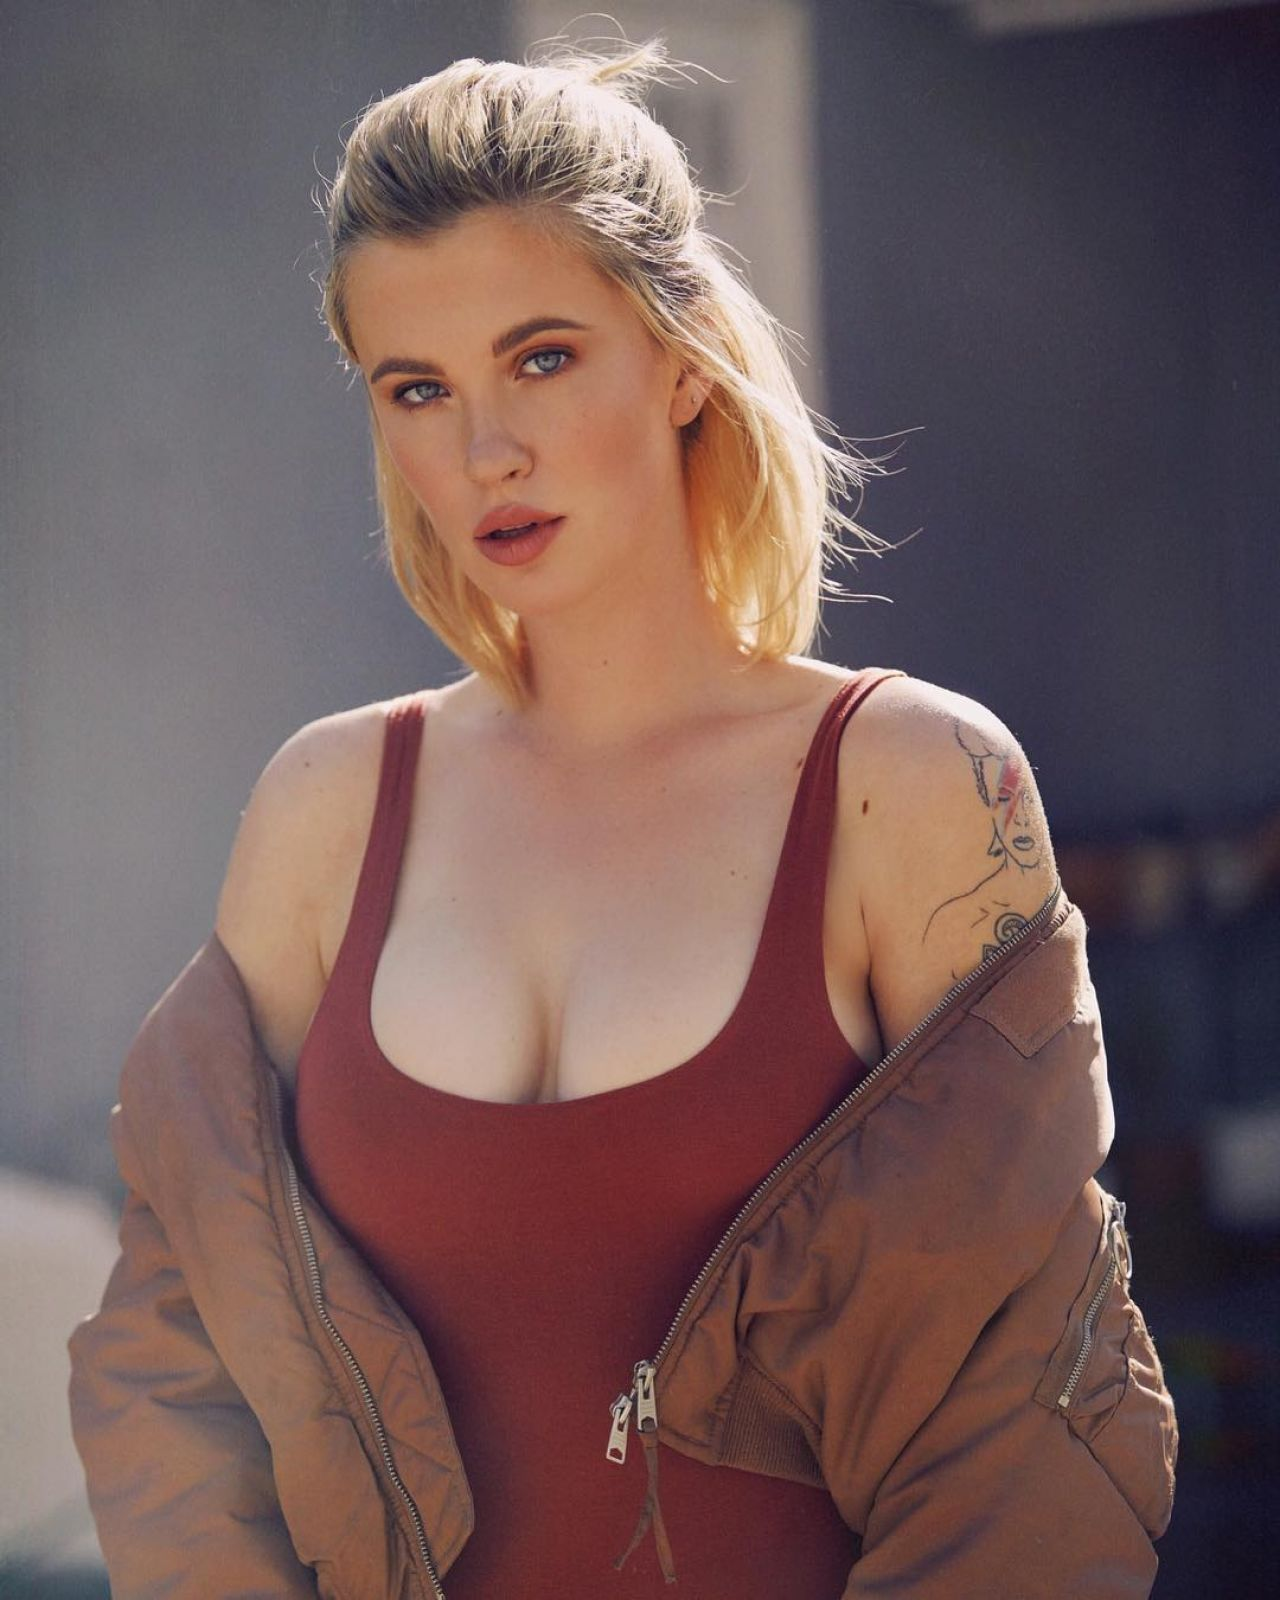 Ireland Baldwin Social Media 04 05 2018